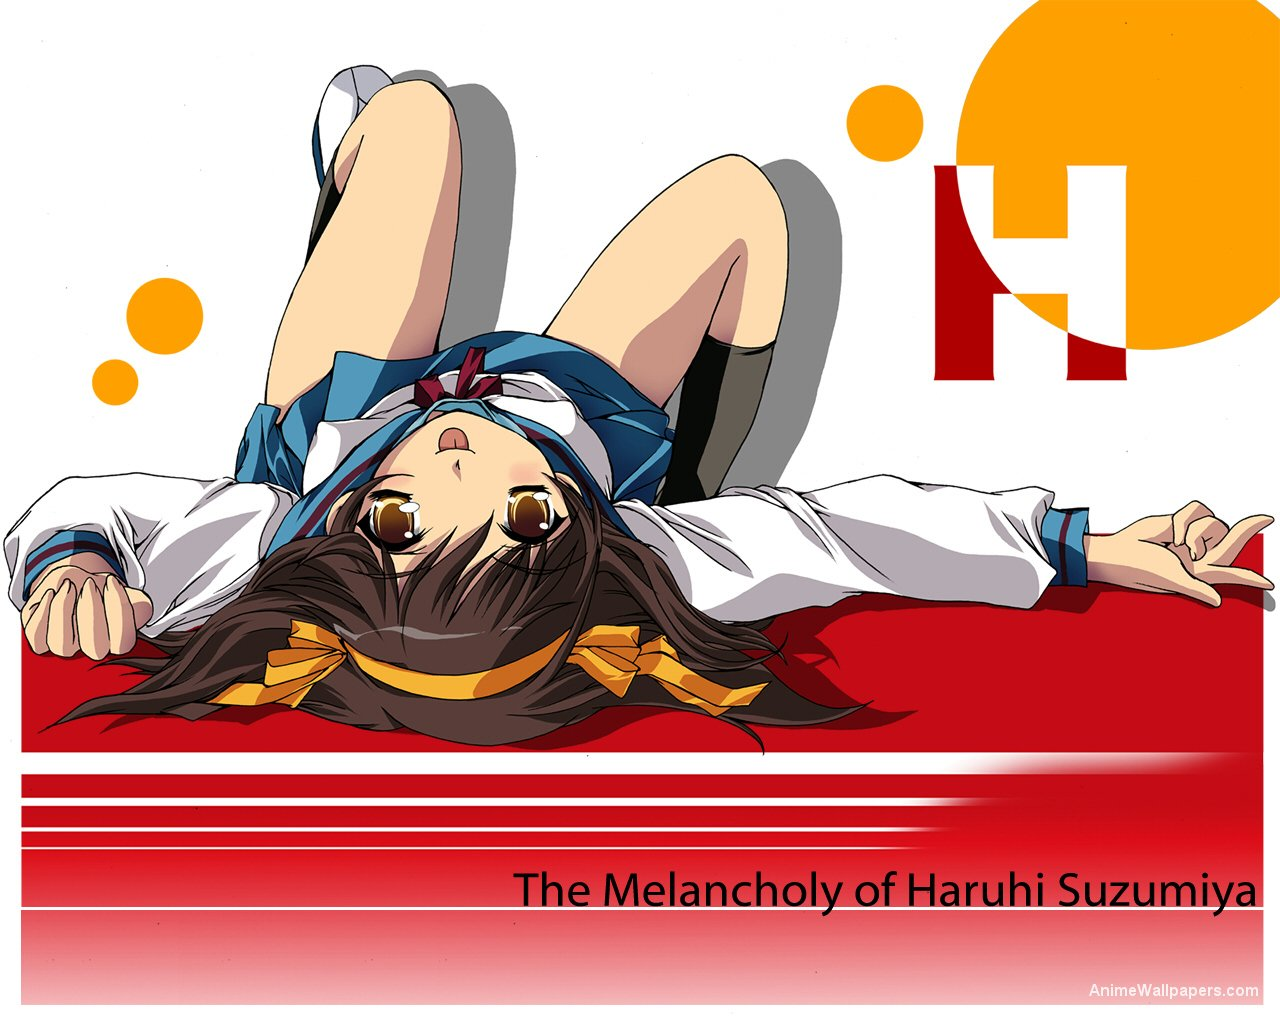 The Melancholy of Haruhi Suzumiya Anime Wallpaper # 11